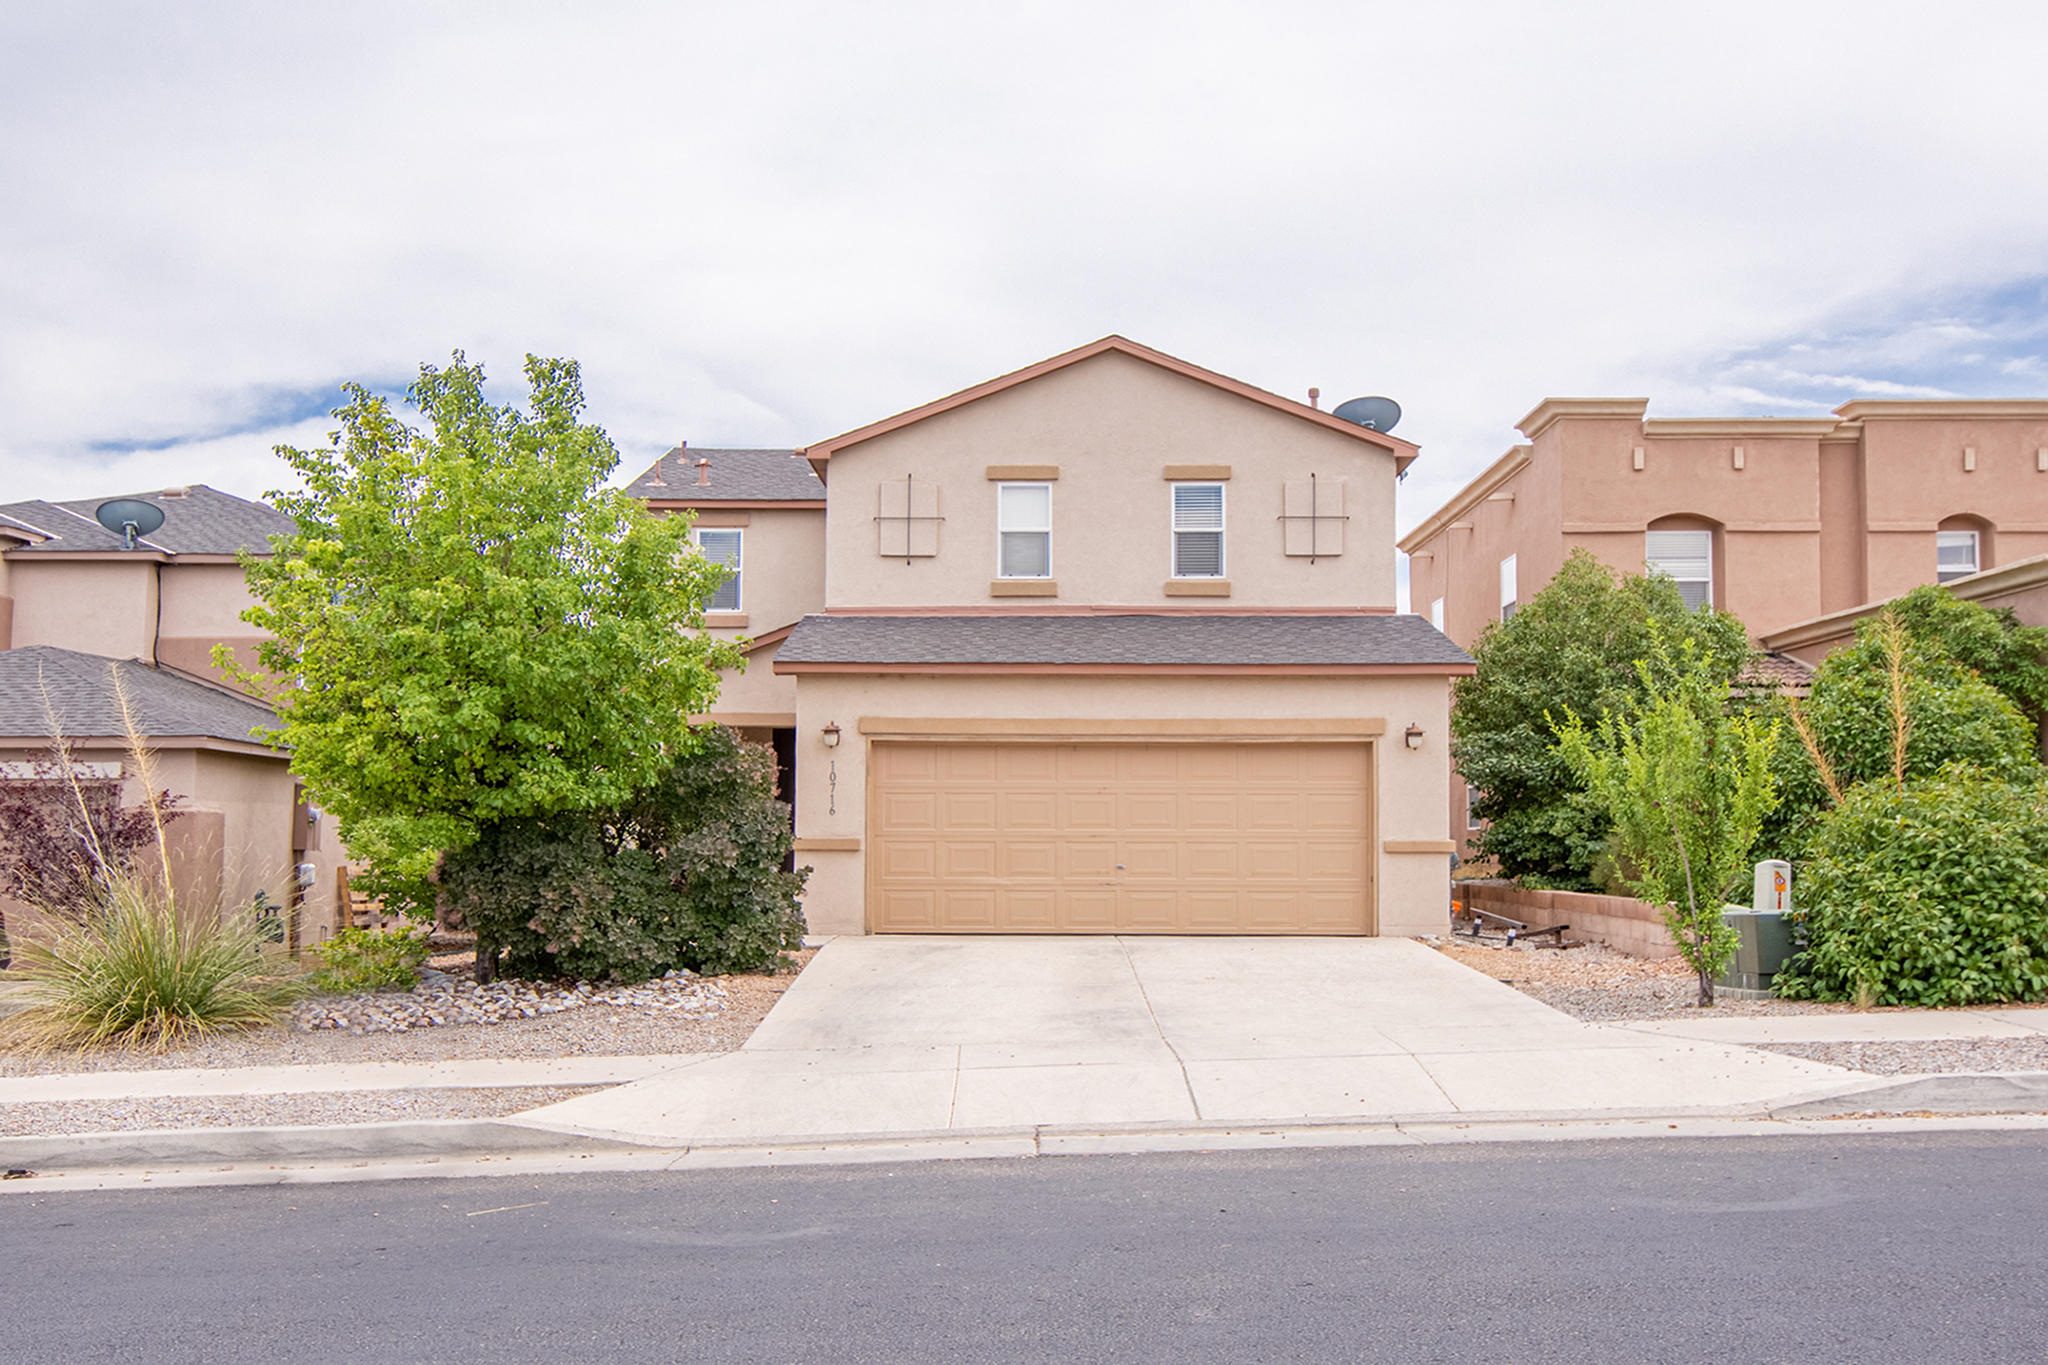 NEED 24 HOUR NOTICE TO VIEW HOME.  TENANT OCCUPIED.Gated community.3 bedroom, 3 bath home. 2 stories. 2 car garage.  Open room concept. All bedrooms are upstairs. Walk in closet in master bedroom.